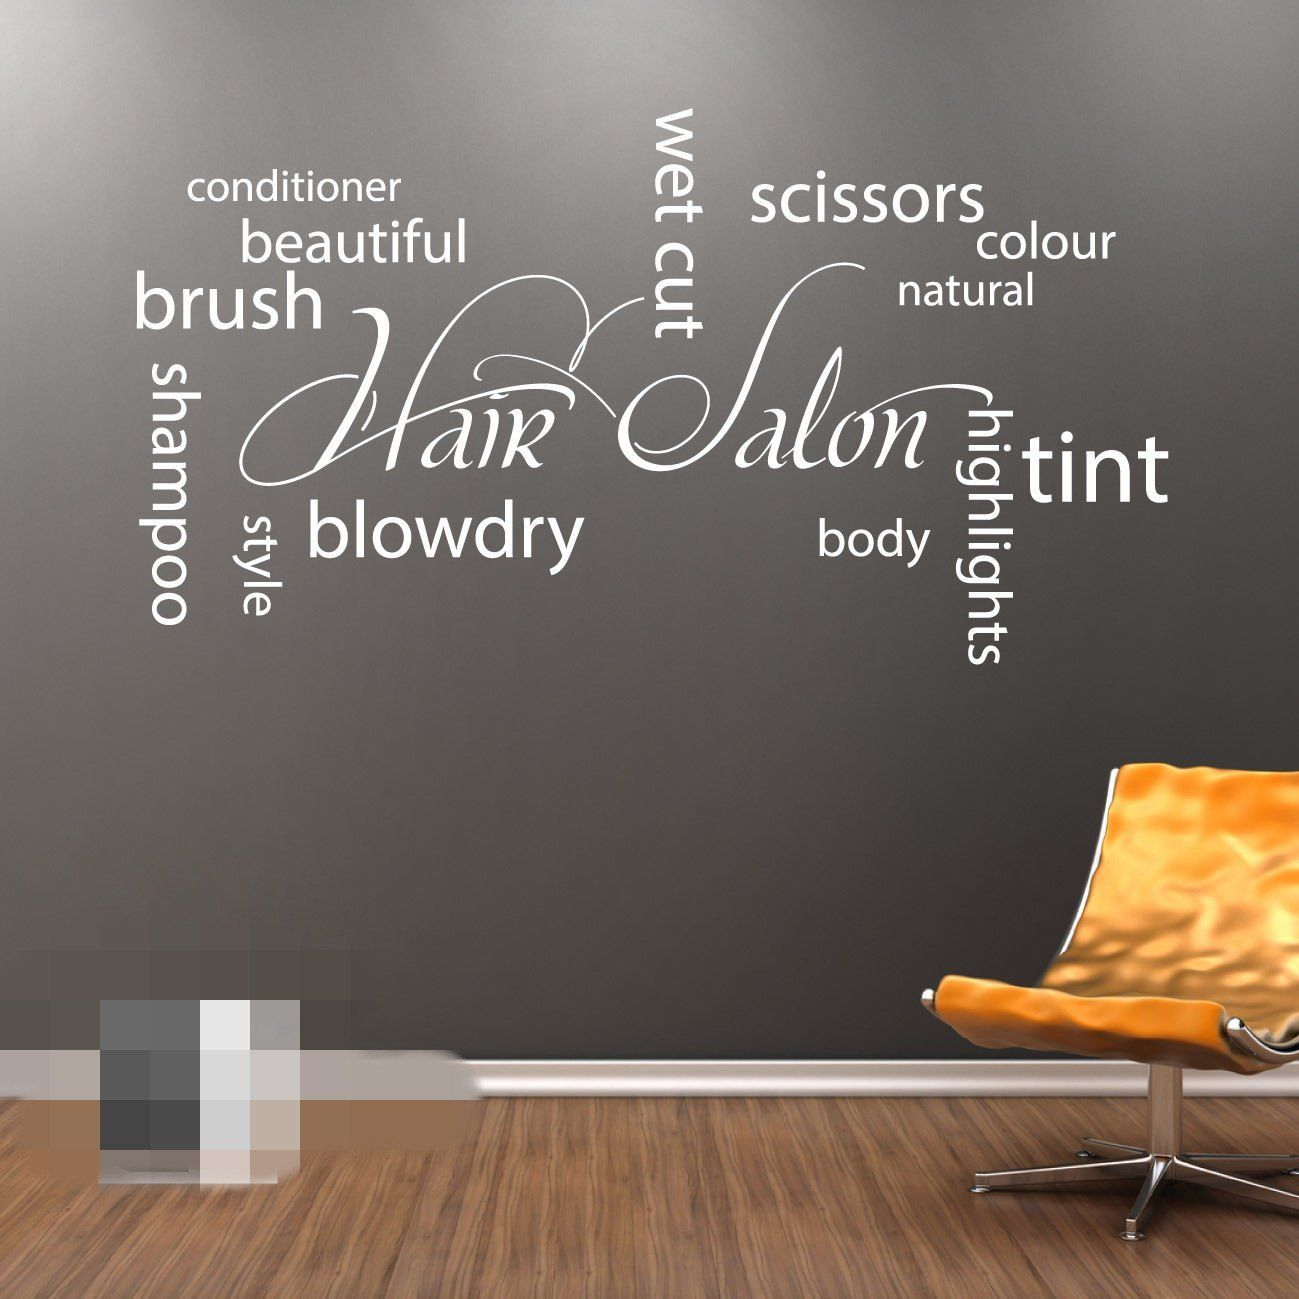 Wall Vinyl Clients - Google Search